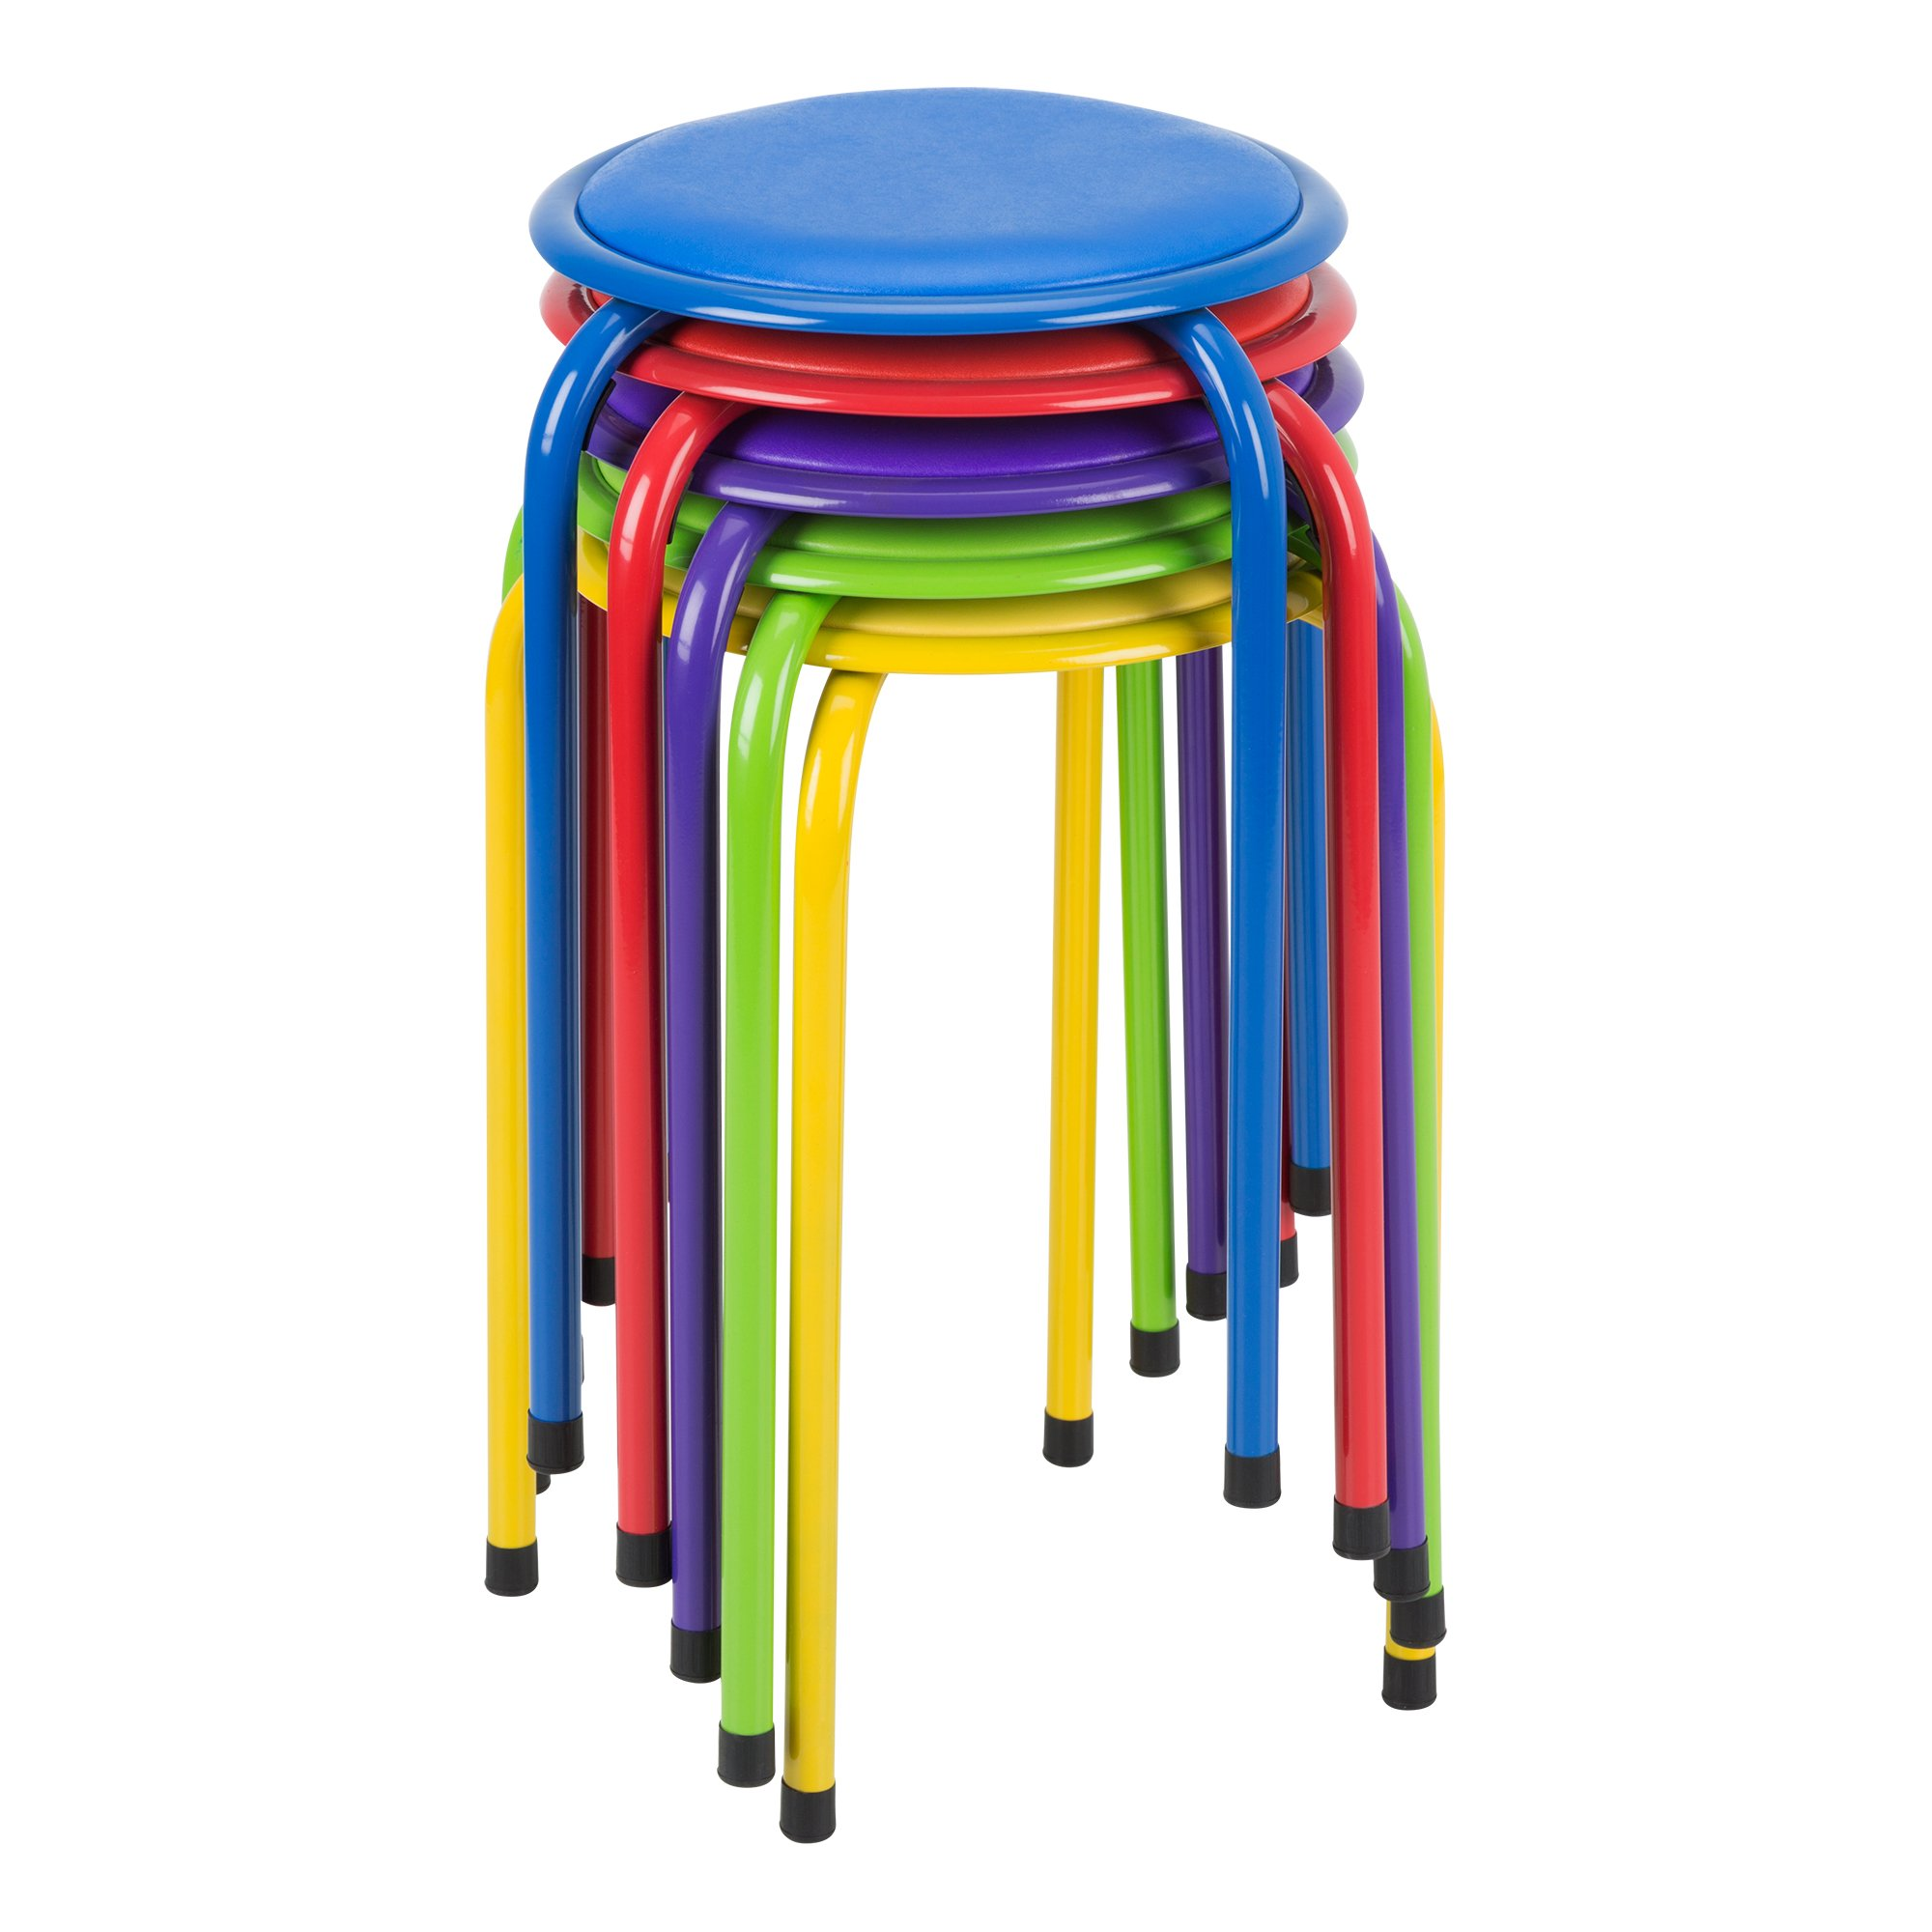 Fat Catalog ALT1102ACSO Metal Stack Stools with Padded Seat, Red/Purple/Blue/Green/Yellow (Pack of 5) by Fat Catalog